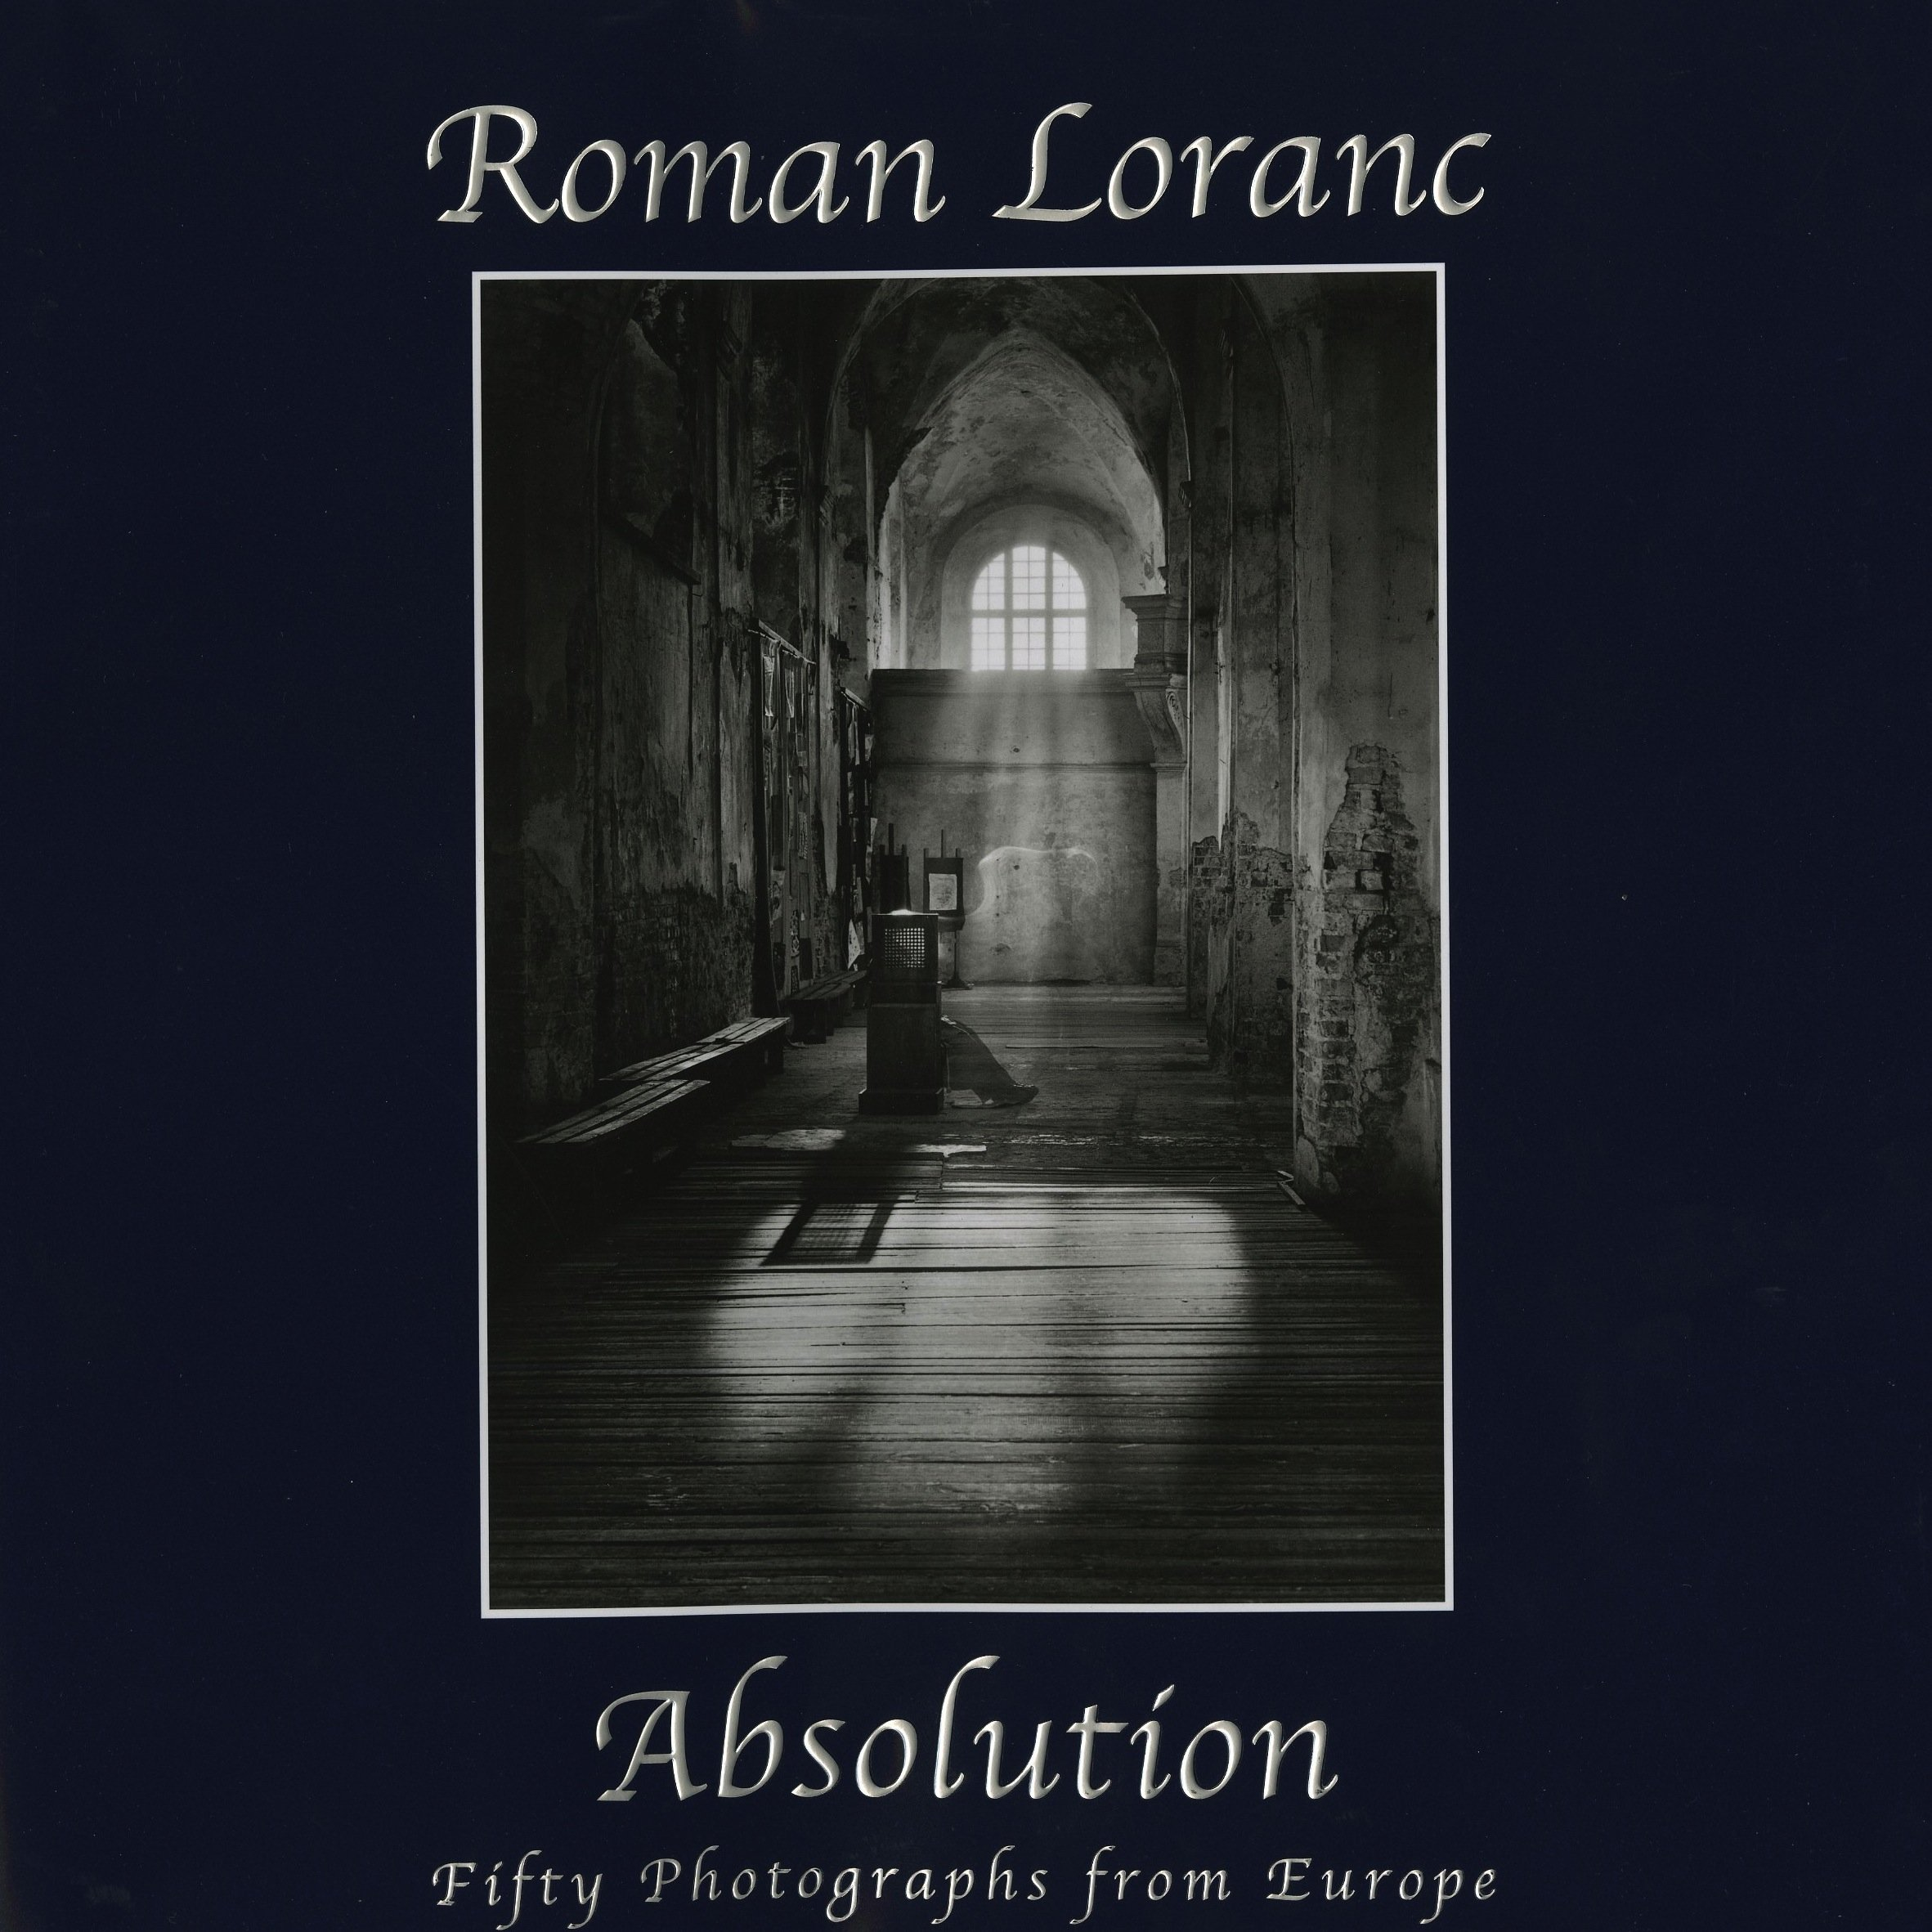 Roman Loranc: Absolution PDF